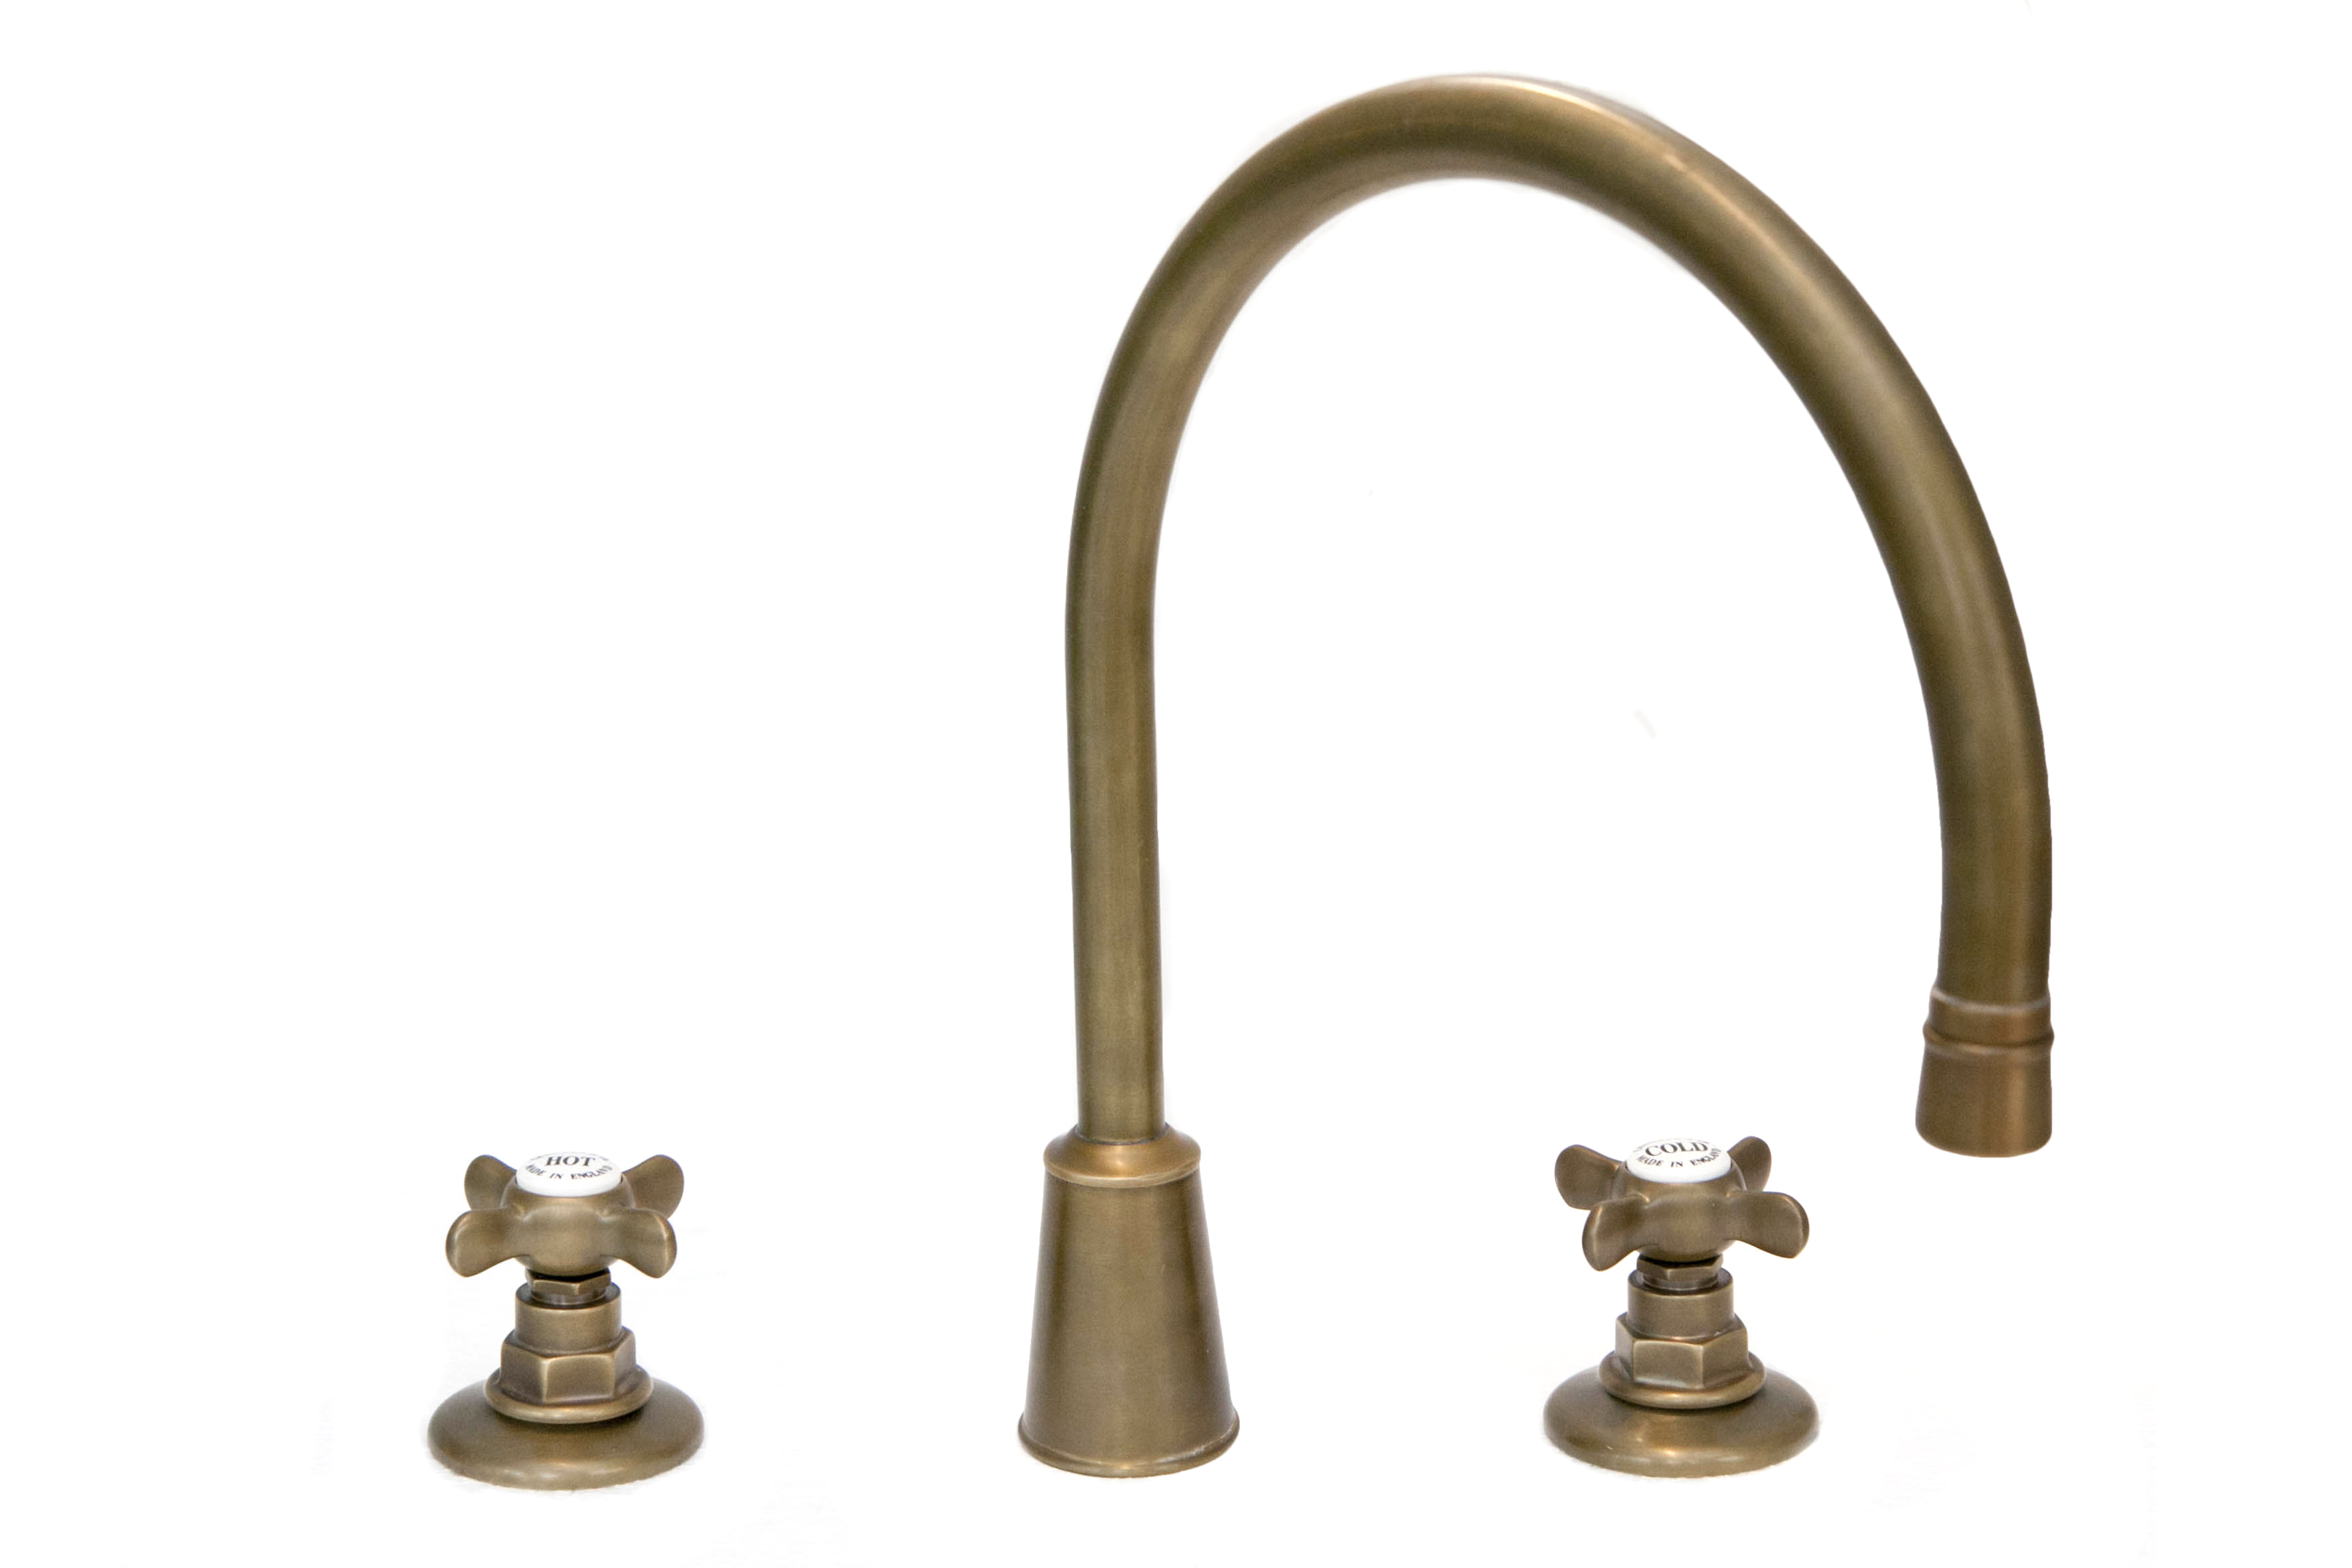 basin tap antique style faucet weathered brass kitchen mixer